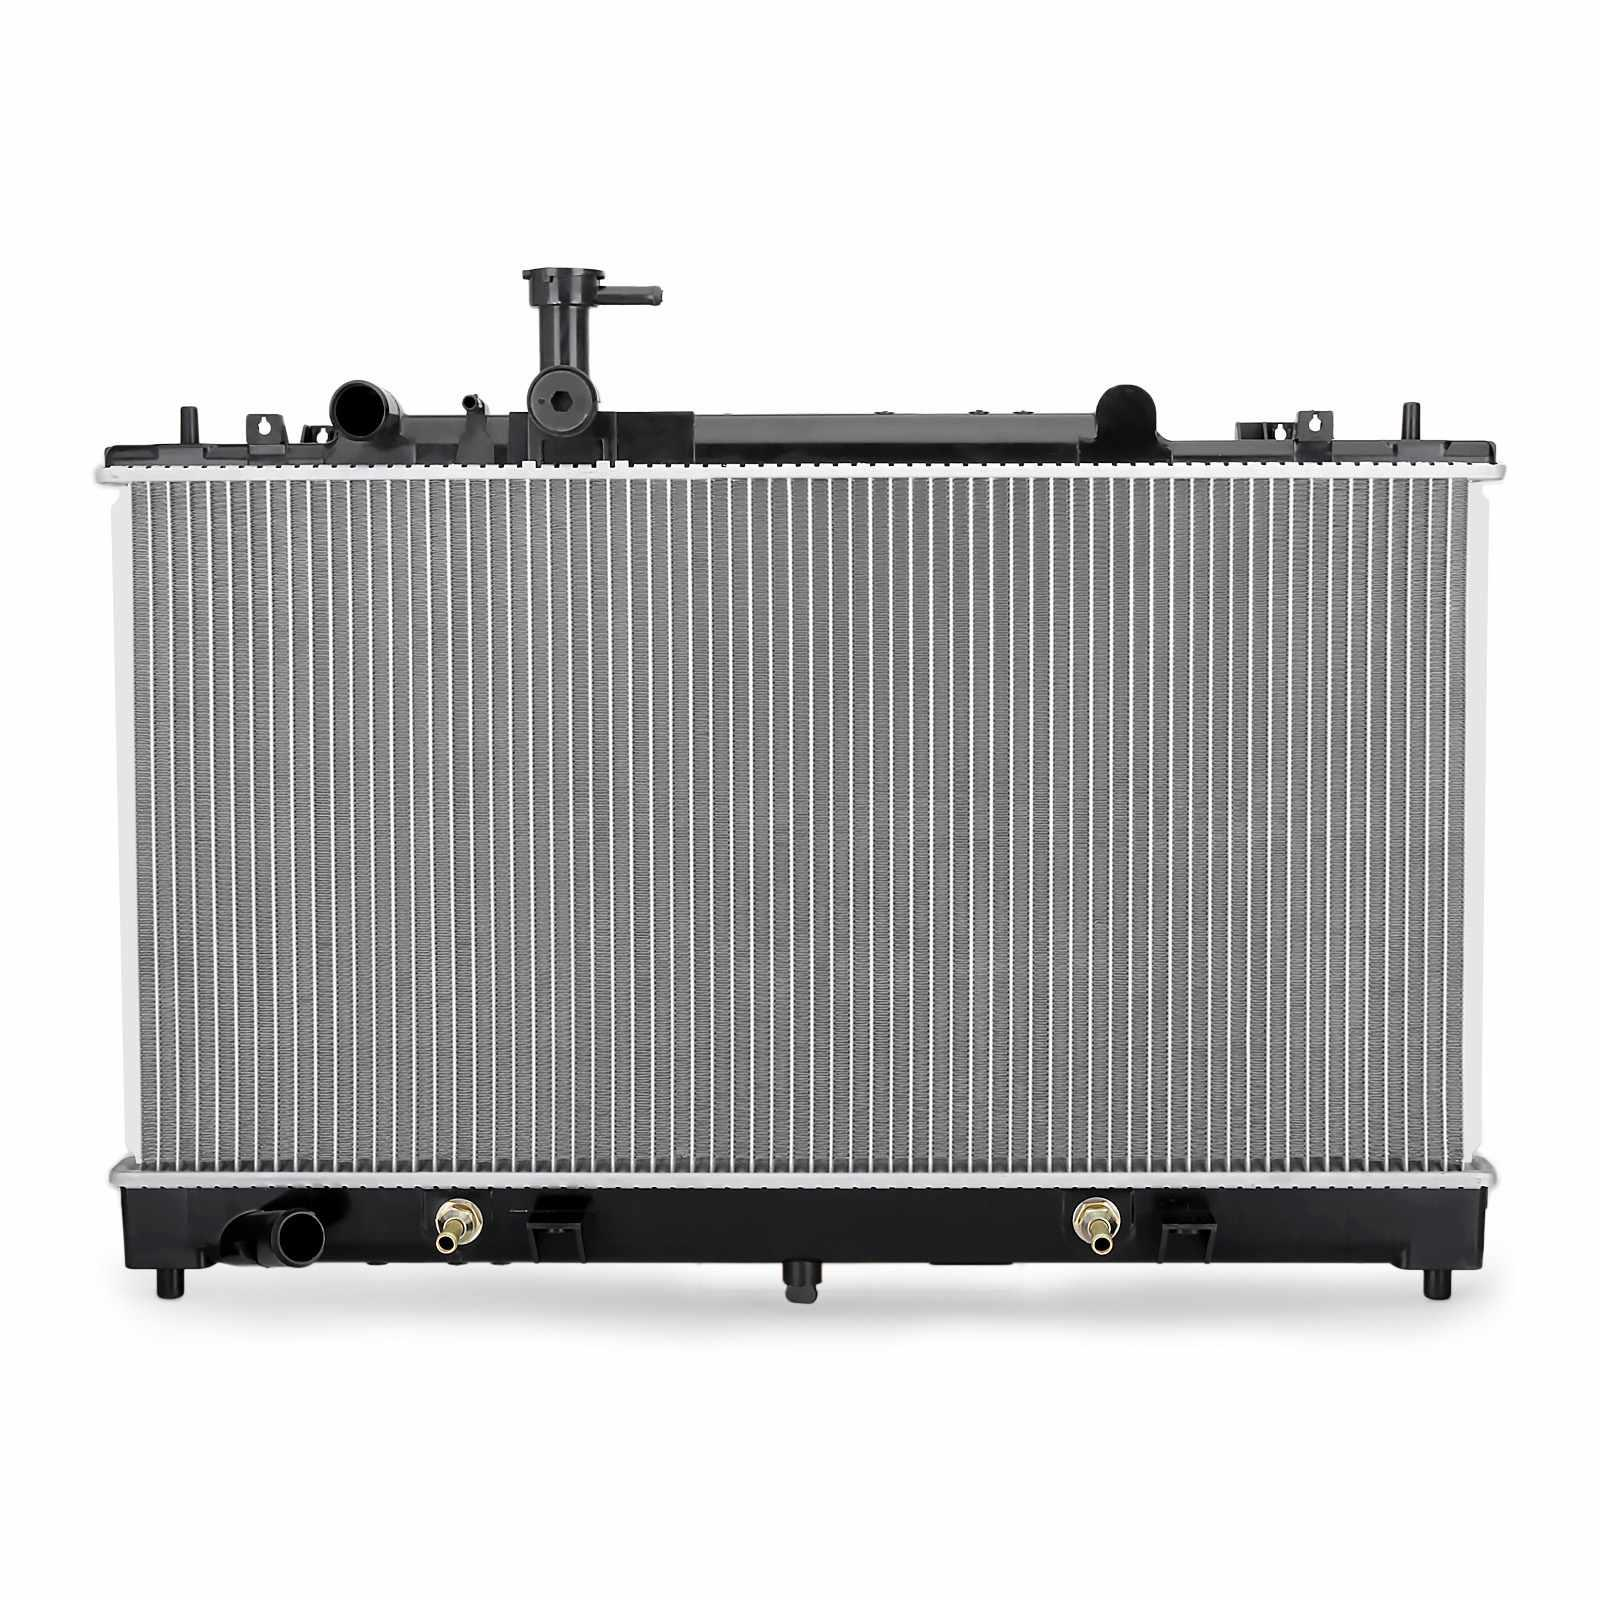 Radiator for Mazda 6 Series GG GY 1.8 2.0 2.3 Petrol Auto / Manual 2002-2007